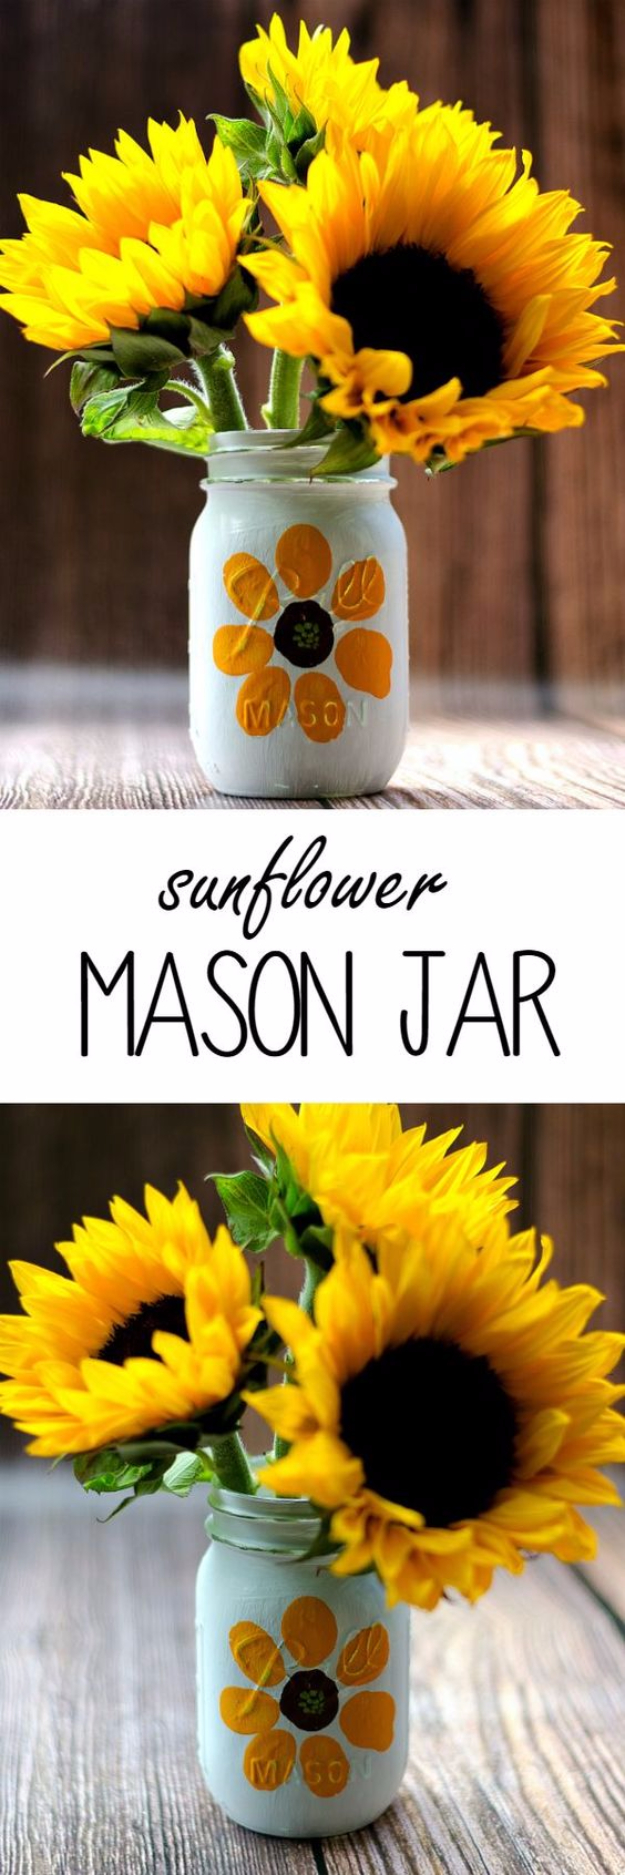 Mason Jar Crafts You Can Make In Under an Hour - Thumbprint Sunflower Mason Jar - Quick Mason Jar DIY Projects that Make Cool Home Decor and Awesome DIY Gifts - Best Creative Ideas for Mason Jars with Step By Step Tutorials and Instructions - For Teens, For Home, For Gifts, For Kids, For Summer, For Fall #masonjarcrafts #easycrafts